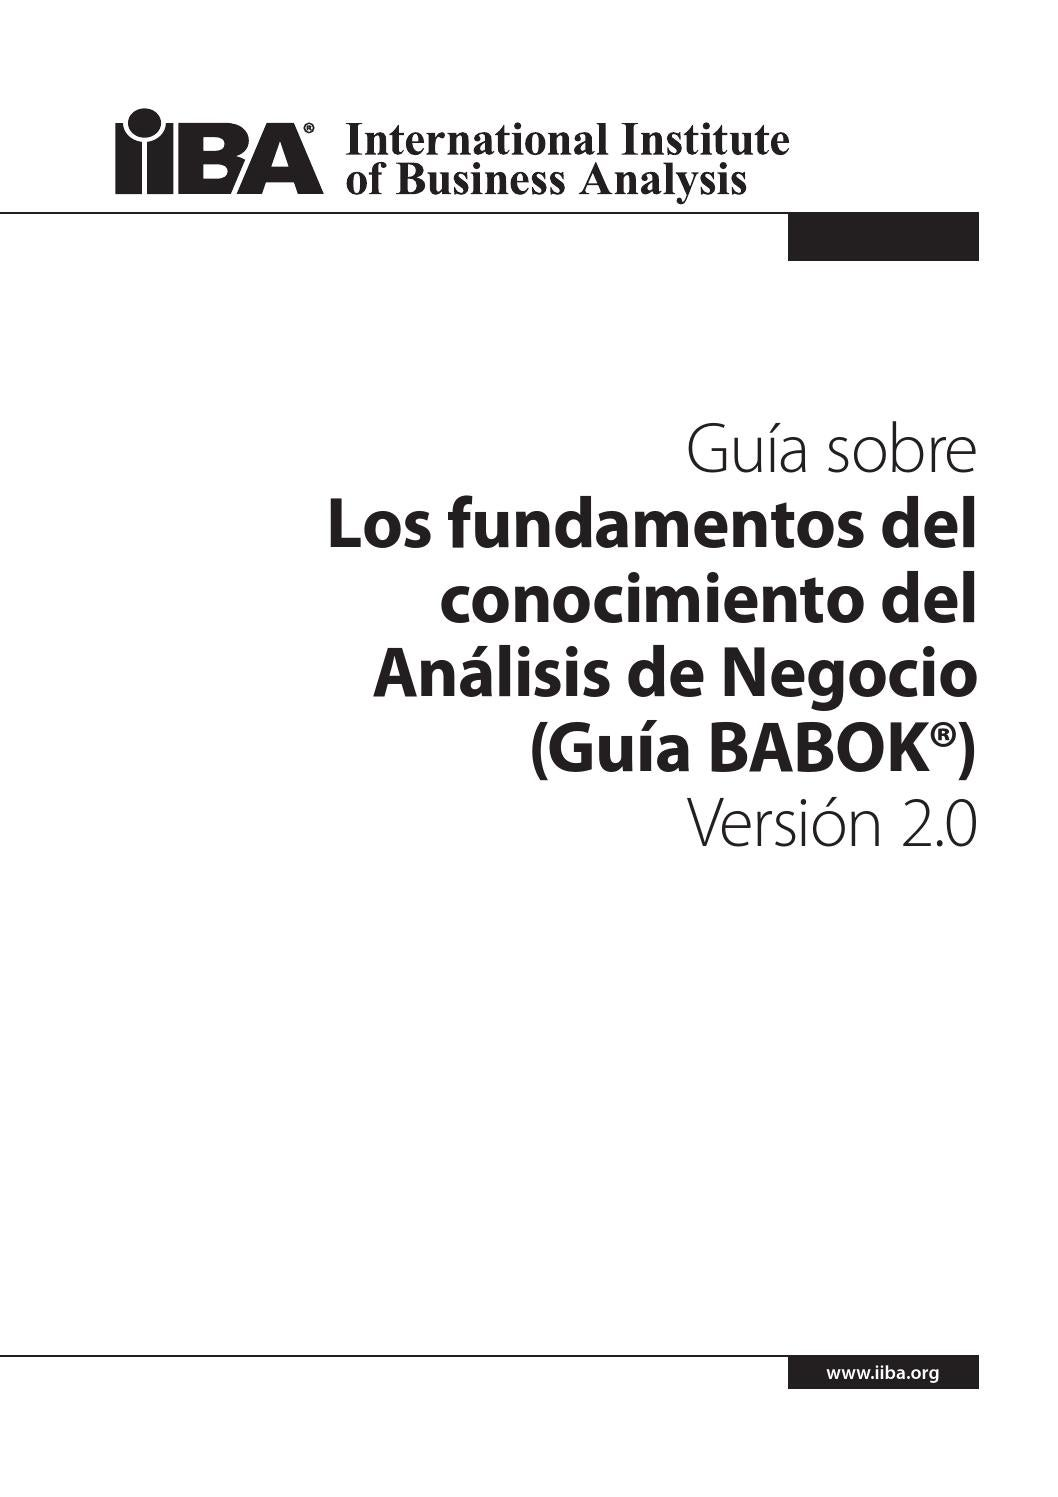 IIBA documento de prueba by INNOVAXIONES - issuu